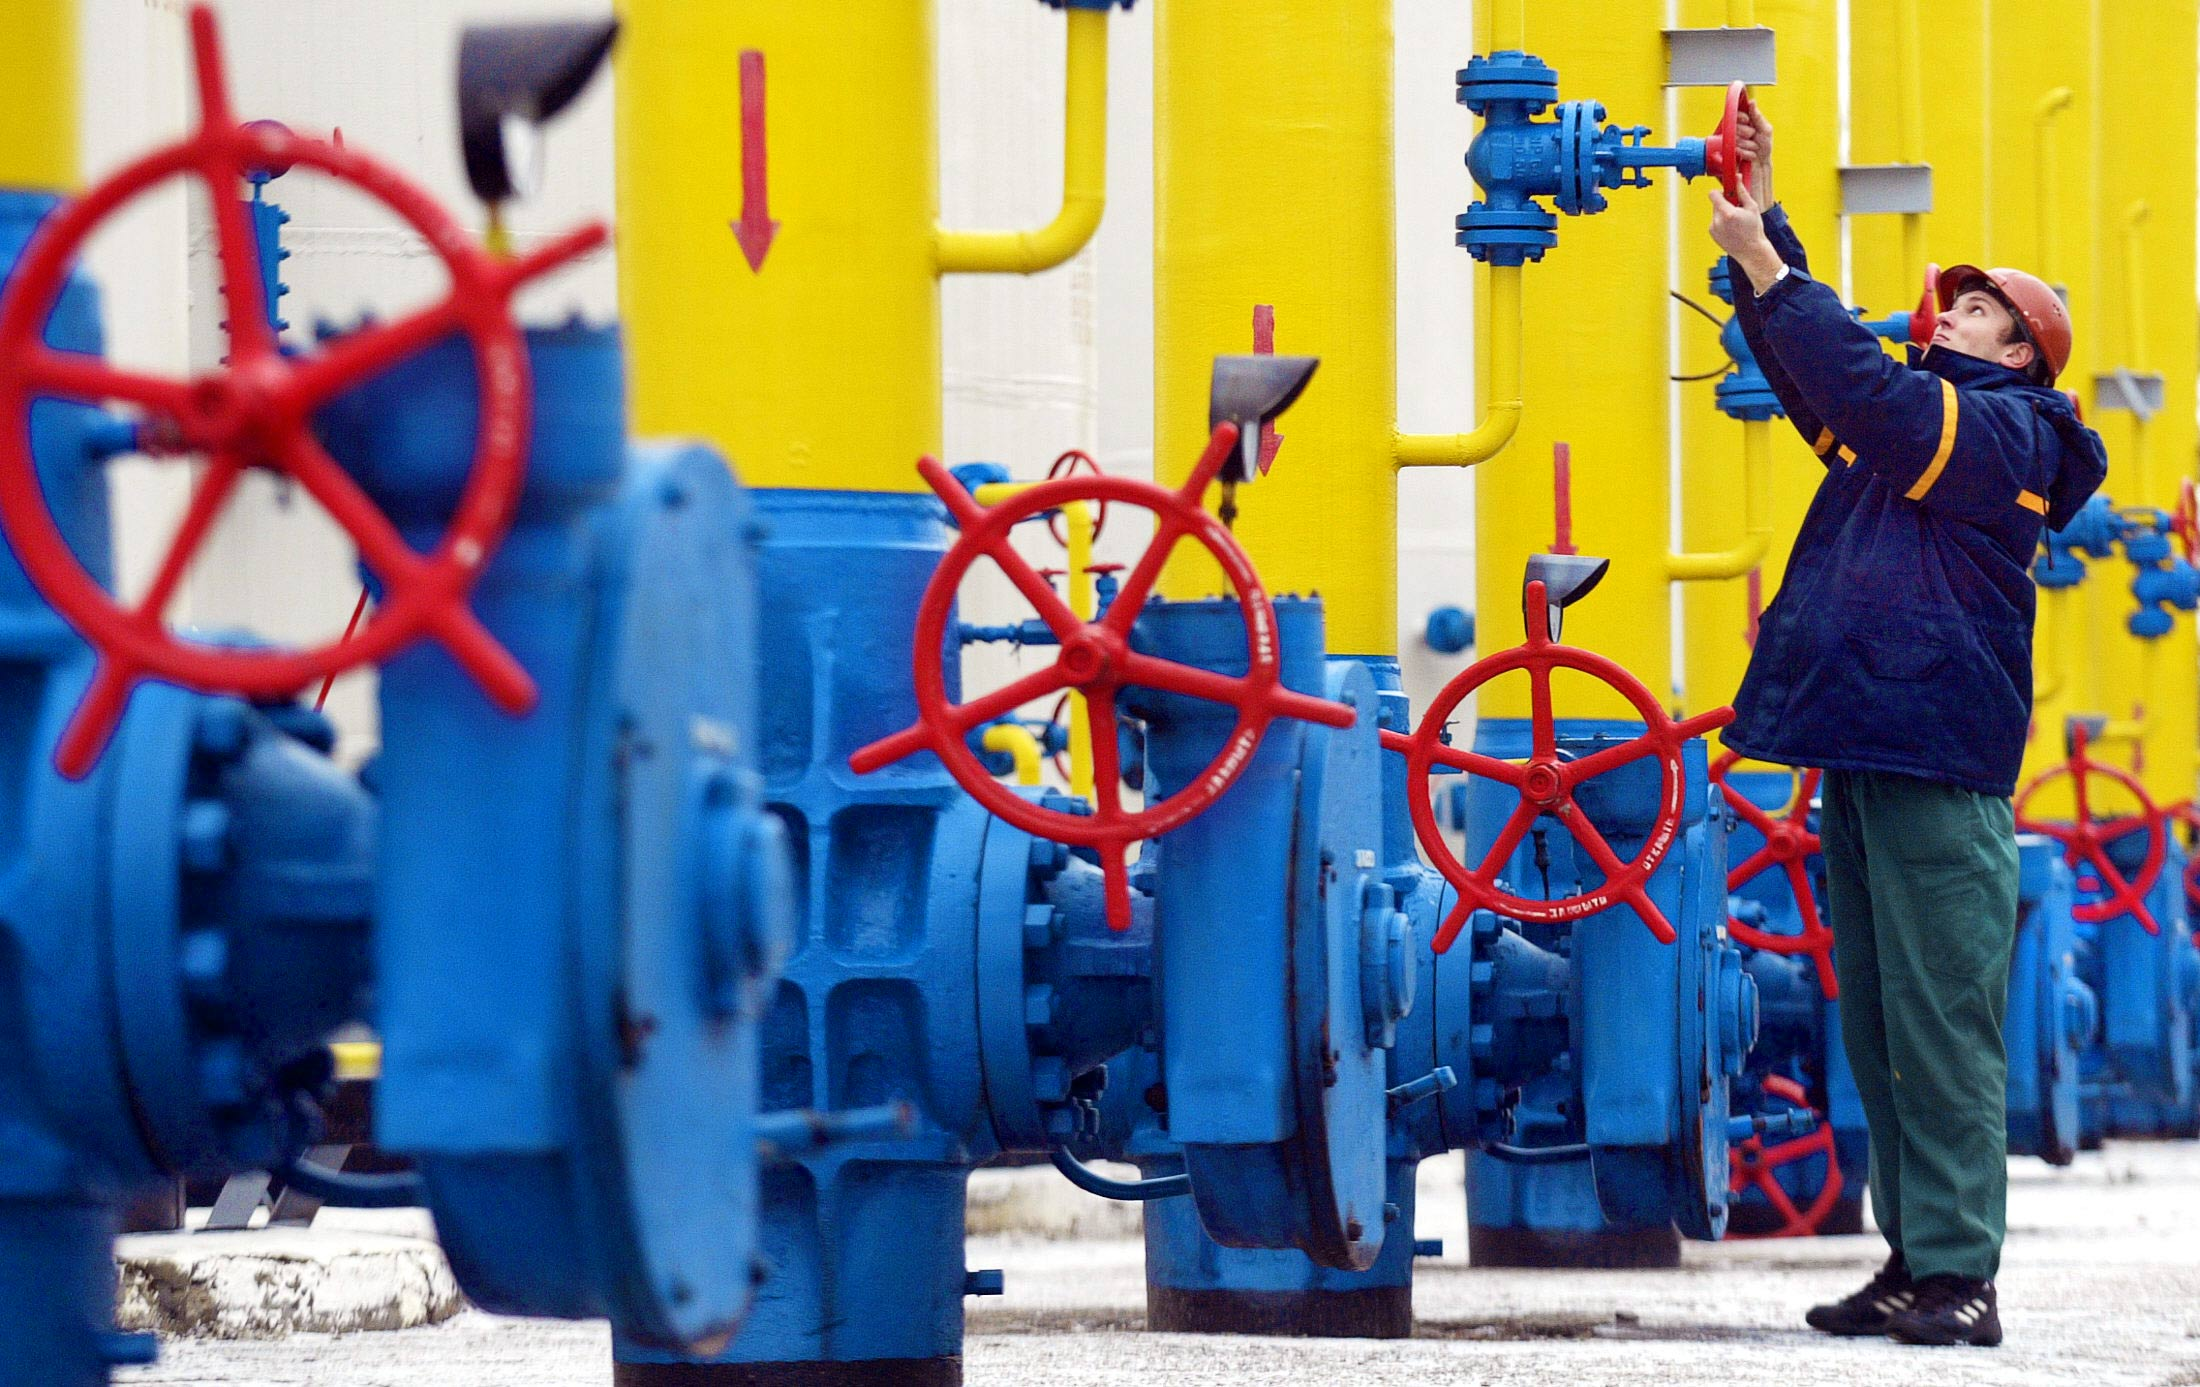 gettyimages 1184951422 - <b>The Nord Stream-2 Deal Gives a Go-Ahead to Russia Despite Ukrainian Protests</b> - Заборона